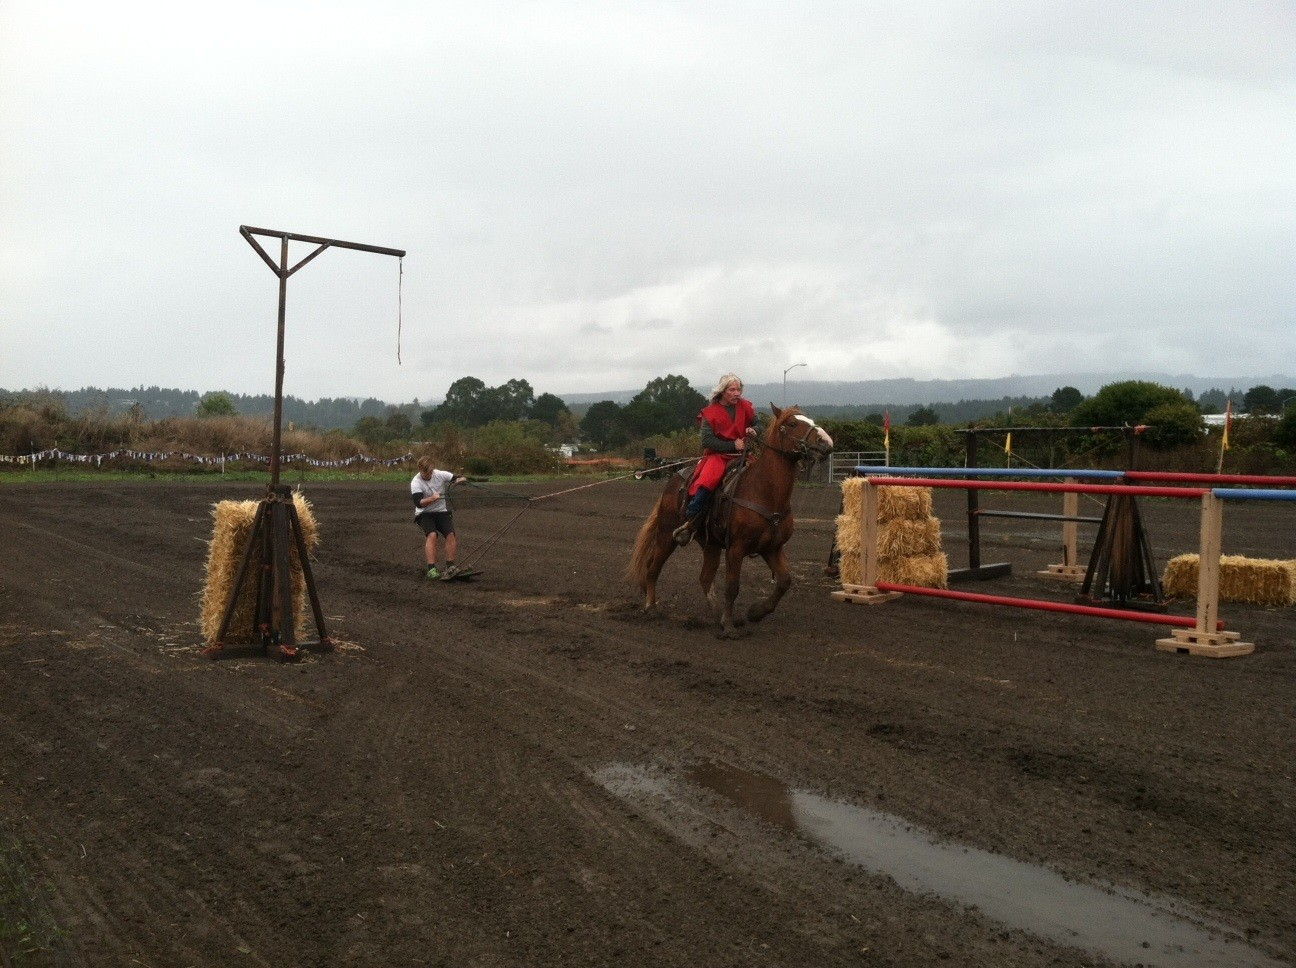 Ridin' dirty. A mud-skier hitches a ride behind a jouster. - TONY SMITHERS